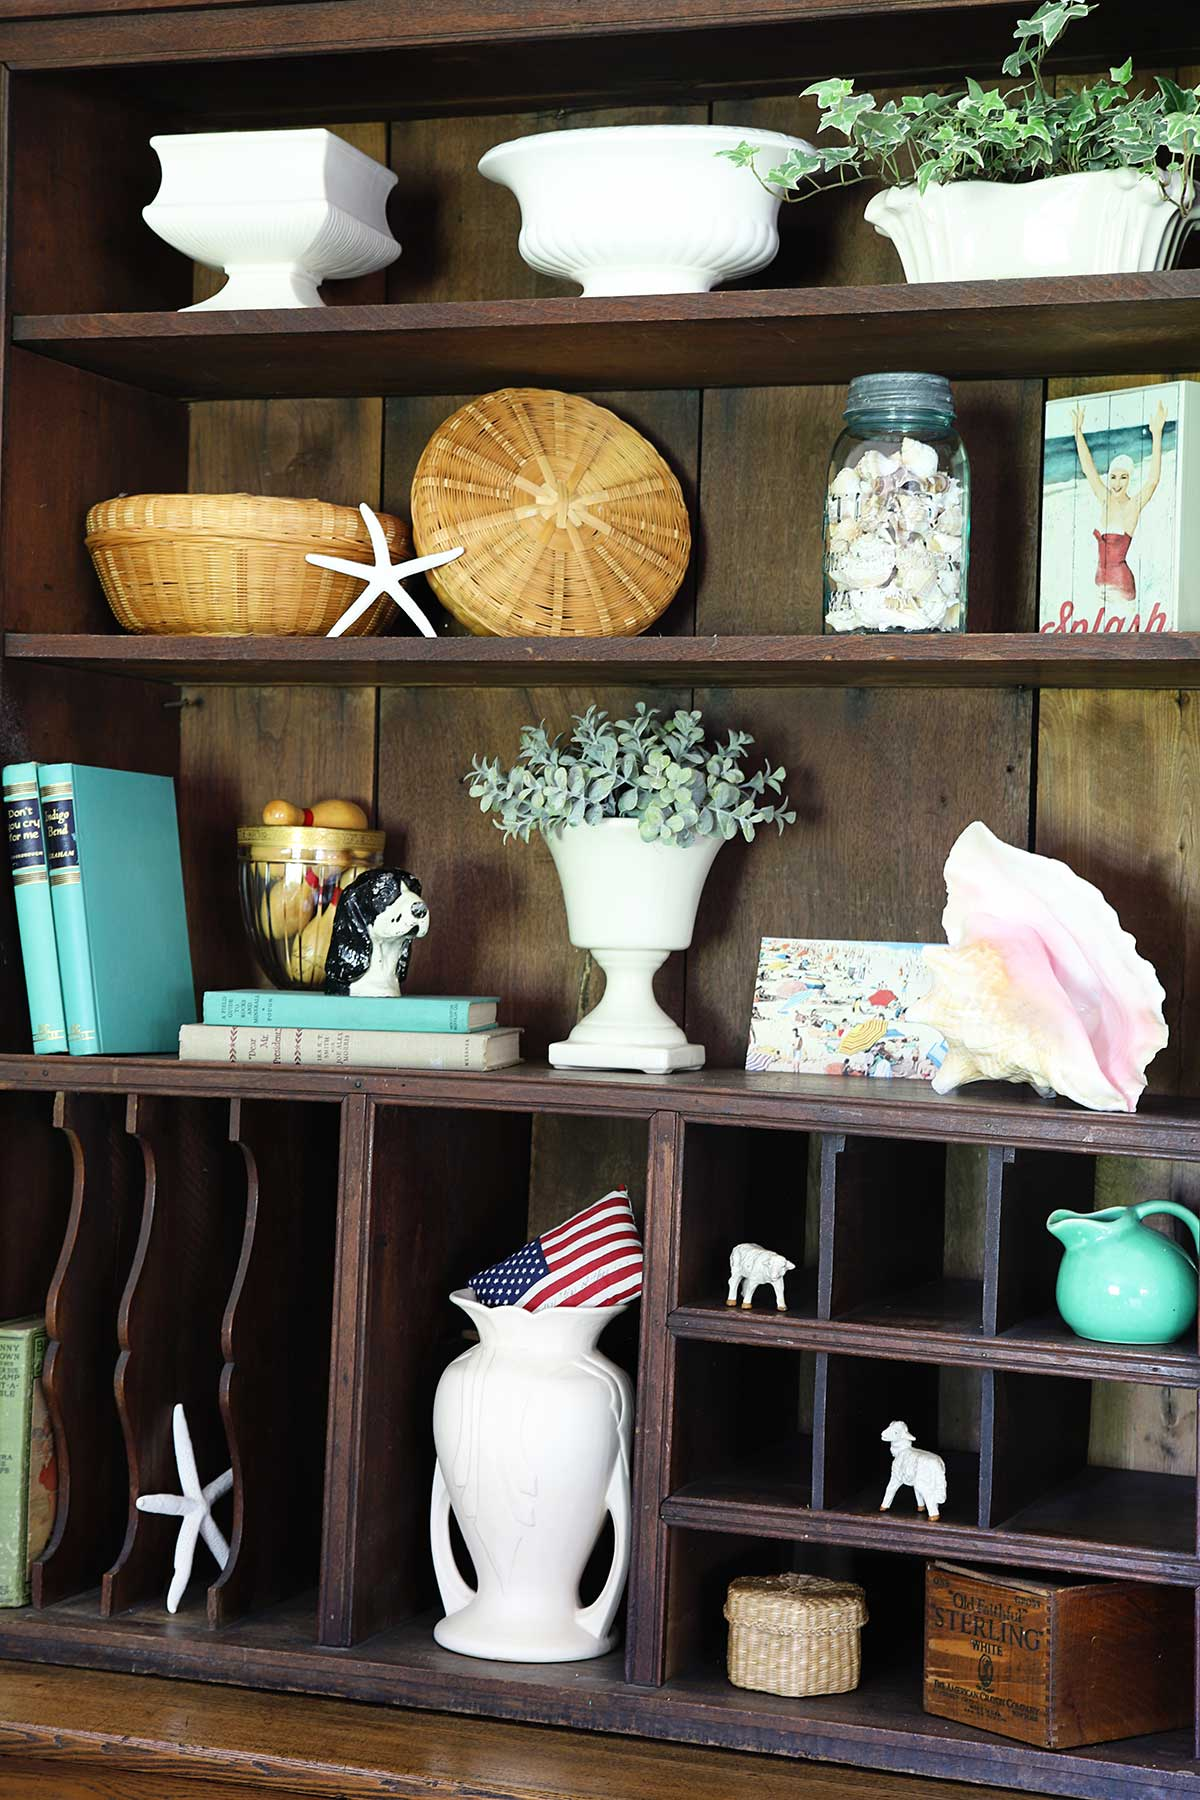 bookcase shelves decorated for summer with shells and beach theme